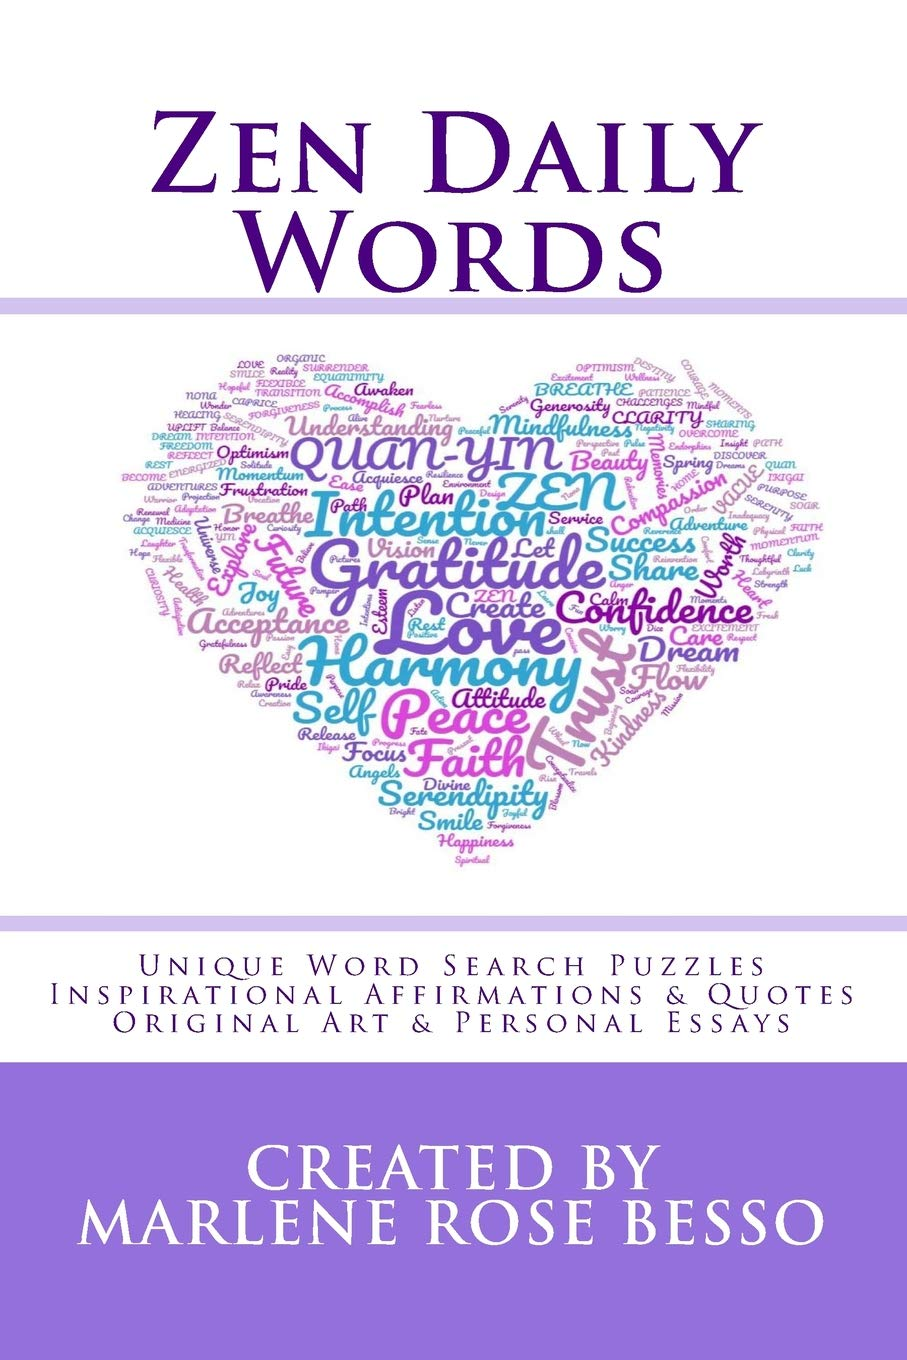 025 71mtkrhewhl Essay Example Inspirational Breathtaking Essays About Life And Struggles For Youth Full